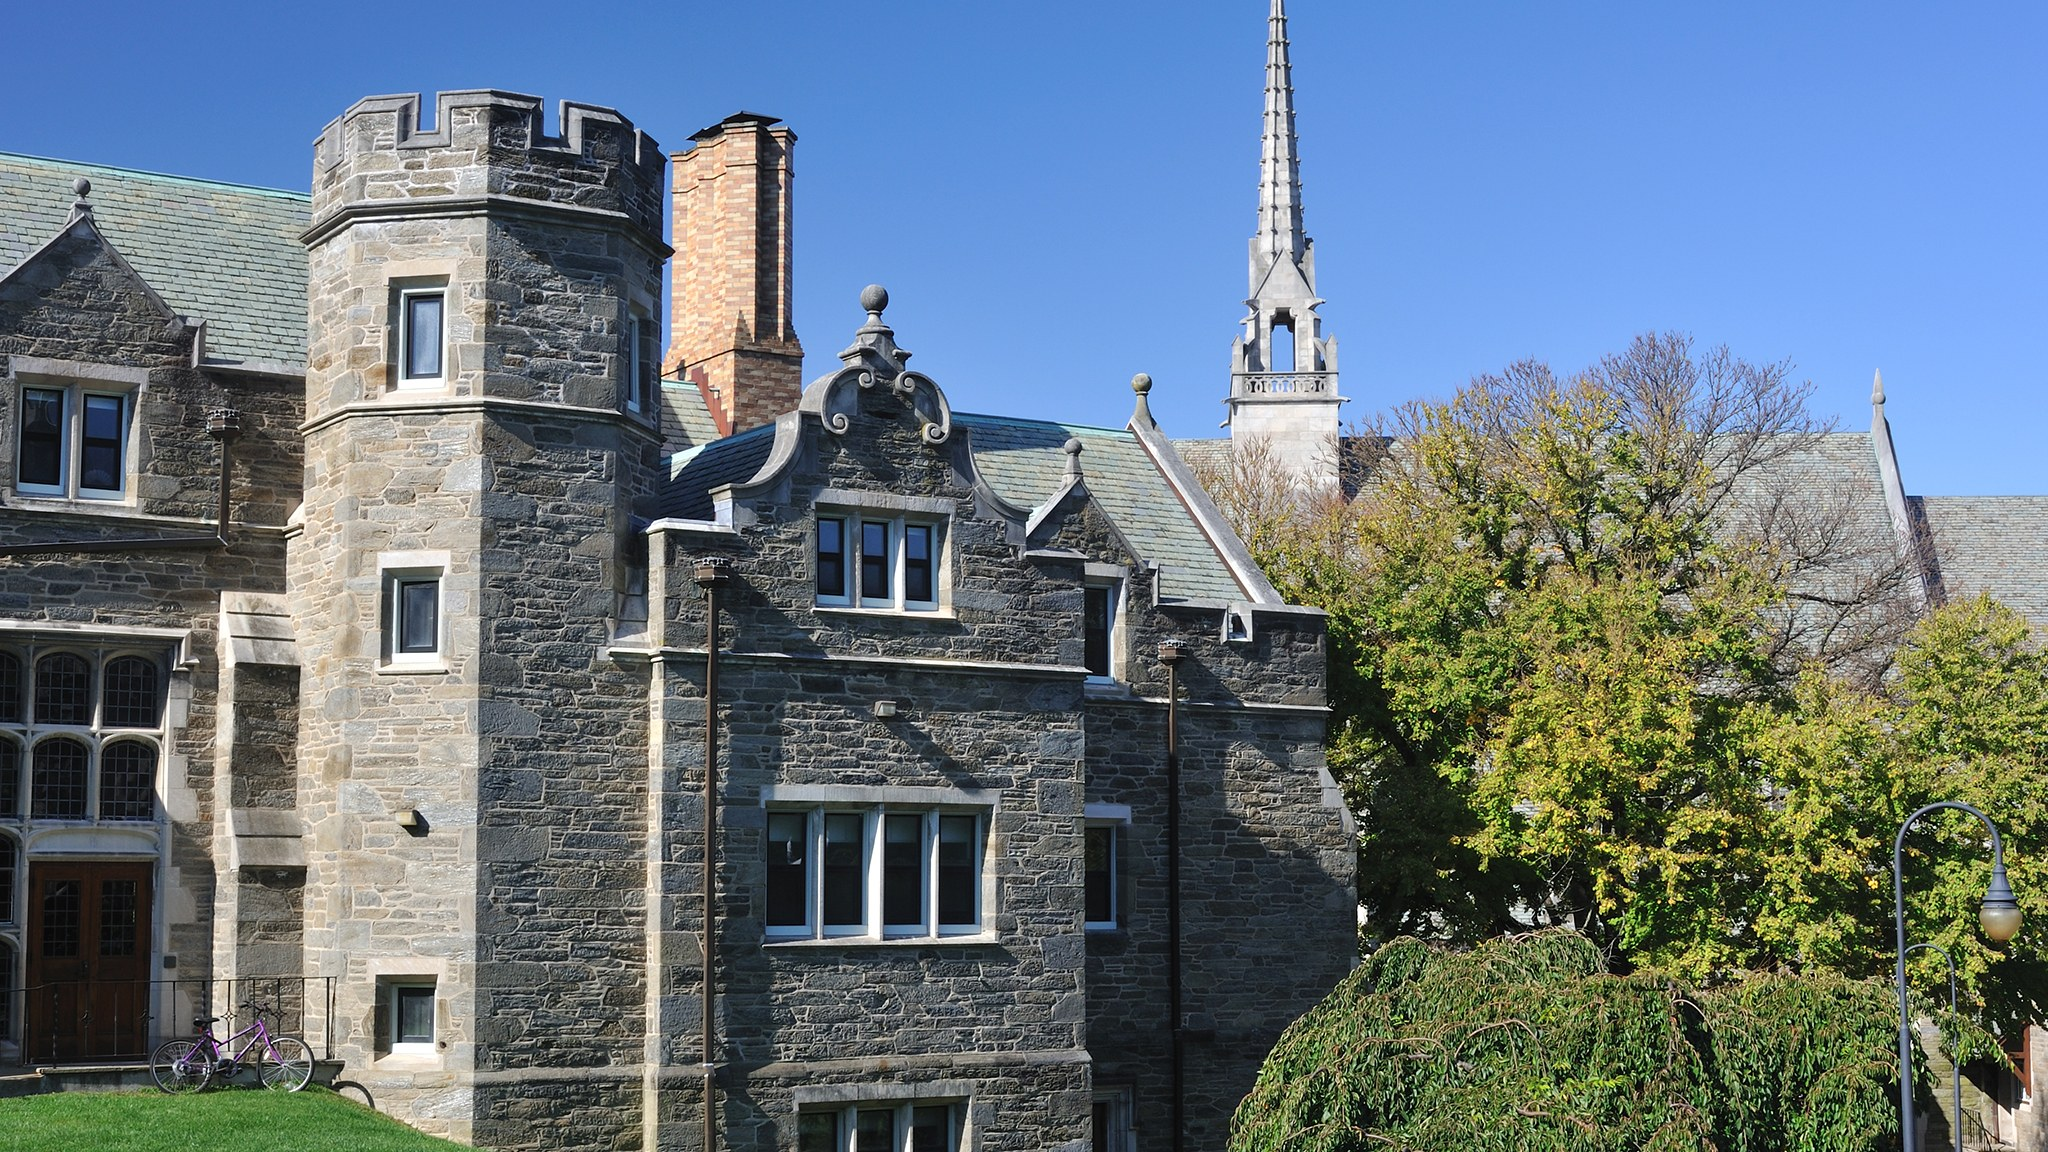 - Undoubtedly, you will consider many factors when deciding where to further your academic and athletic pursuits. One aspect that will have a potential significant impact on your decision will be the campus of the schools you are considering. Here is a list of several schools that have been listed by numerous sources as the prettiest in the country. Obviously, there are many. many more and much will depend on your personal preferences.EASTPrinceton University - Ivy League School. NCAA I. Very Competitive AthleticsAmherst College - NCAA III. Highly Selective Academics. Good AthleticsPenn State - Big Ten. Power 5. Public with Strong Academics. Very Competitive Athletics.SOUTHEASTUniversity of Virginia - ACC. Power 5. Public with Highly Selective Academics. Very Competitive Athletics.Wake Forest University - ACC. Power 5. Highly Selective Academics. Very Competitive Athletics.Emory College - NCAA III. UAA Conference. Highly Selective Academics. Very Good Athletics.SOUTHUniversity of Mississippi - SEC. Power 5. Above Average Academics. Highly Competitive Athletics.Sewanee: The University of the South - NCAA III. Above Average Academics. Moderate Athletics.Furman University - NCAA I. Extremely Competitive Distance / XC Program. Mid-range Academics.MIDEASTNotre Dame - ACC. Power 5. Highly Selective Academics, Highly Competitive Athletics.Kenyon College - NCAA III. Well Above Average Academics. Moderately Competitive Athletics.Indiana University - Big Ten. Power 5. Public. Moderately Strong Academics. Highly Competitive Athletics.MIDWESTThe University of Chicago - NCAA III. UAA Conference. Highly Selective Academics. Above Competitive Athletics.University of Wisconsin - Big Ten. Power 5. Public. Strong Academics. Highly Competitive Athletics.Washington Univerity (St Louis) - NCAA III. UAA Conference. Highly Selective Academics. Competitive Athletics.WESTStanford University - PAC 12. Power 5. Highly Selective Academics. Very Competitive Athletics.University of Washington - PAC 12.Power 5. Public. Selective Academics. Very Competitive AthleticsLewis & Clark College - NCAA III. Moderate Academics. Moderately Competitive Athletics.